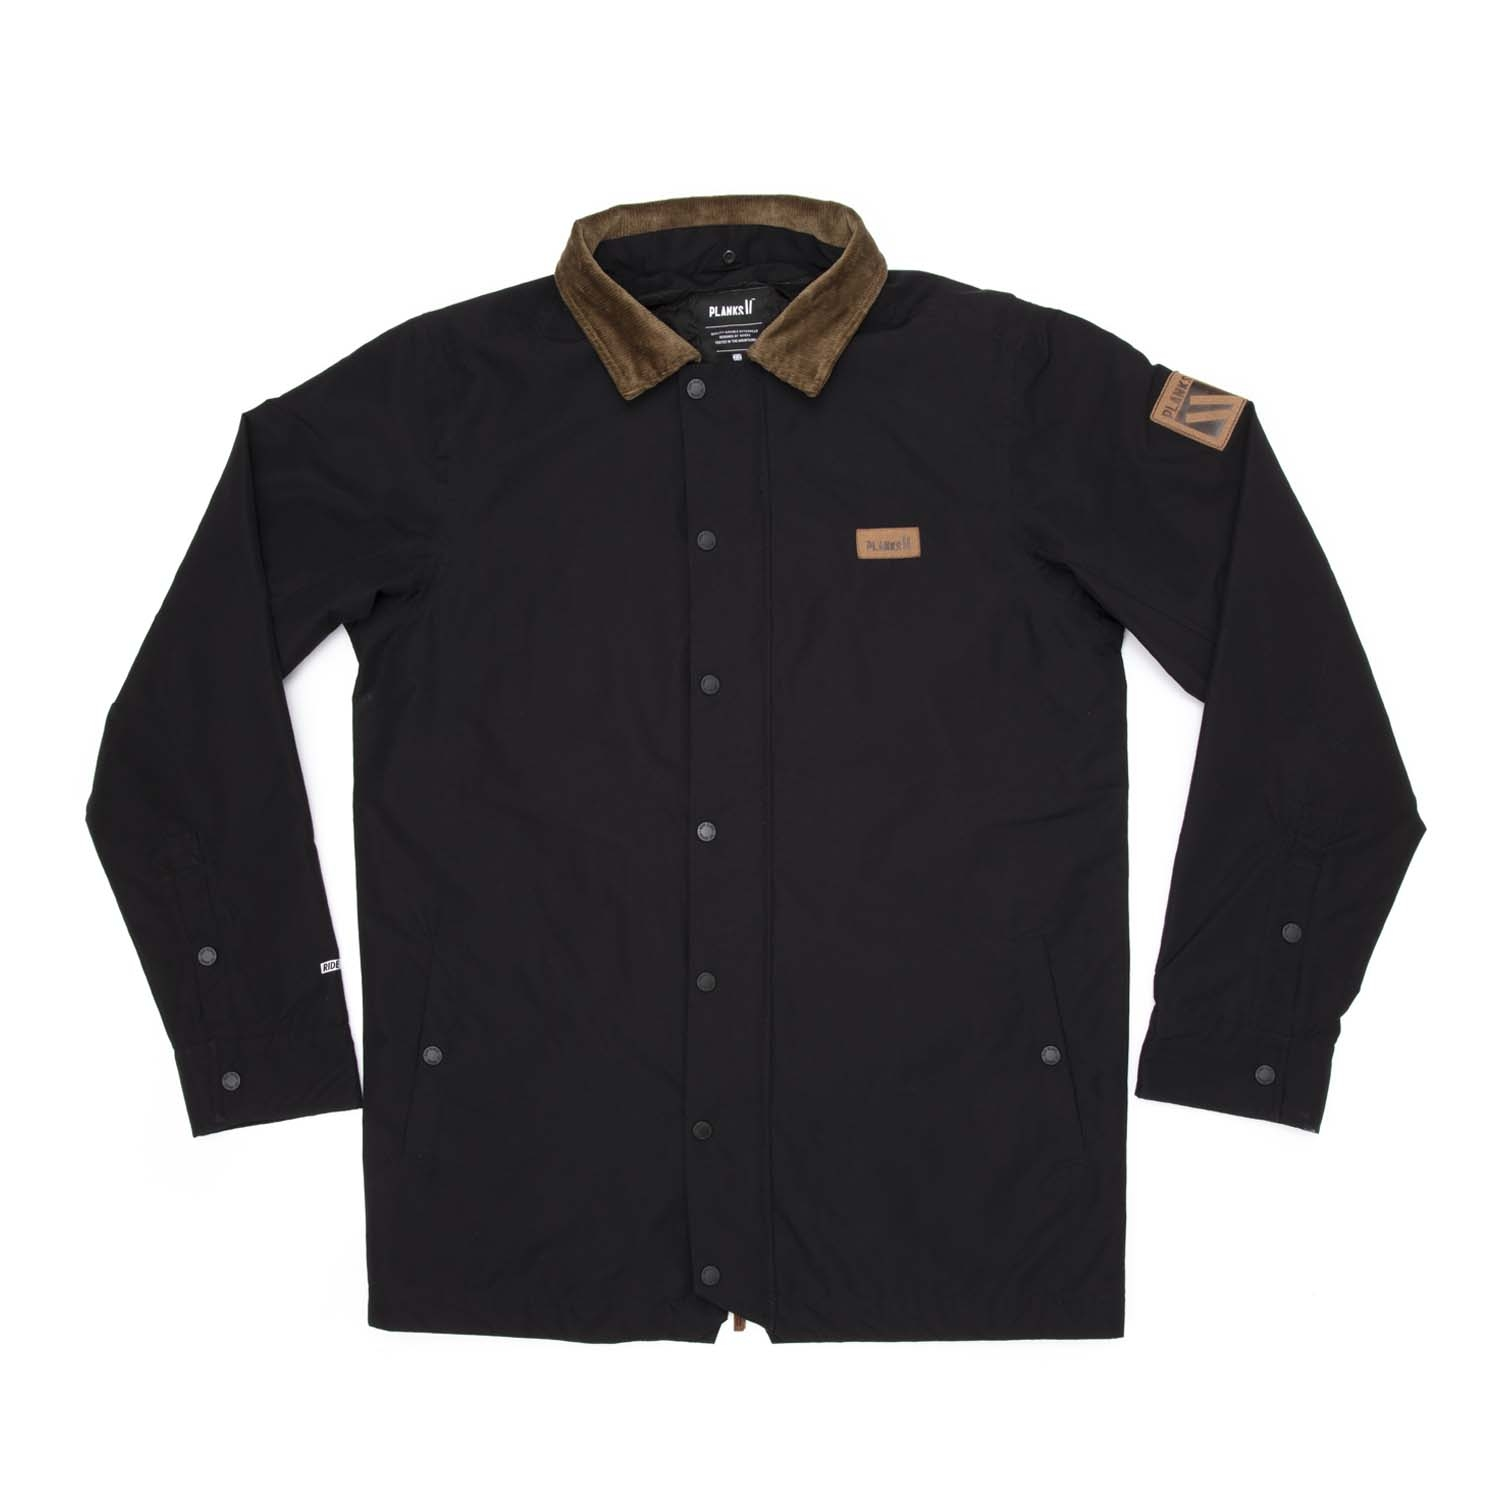 Planks Throw-Down Collared Jacket Black 2020